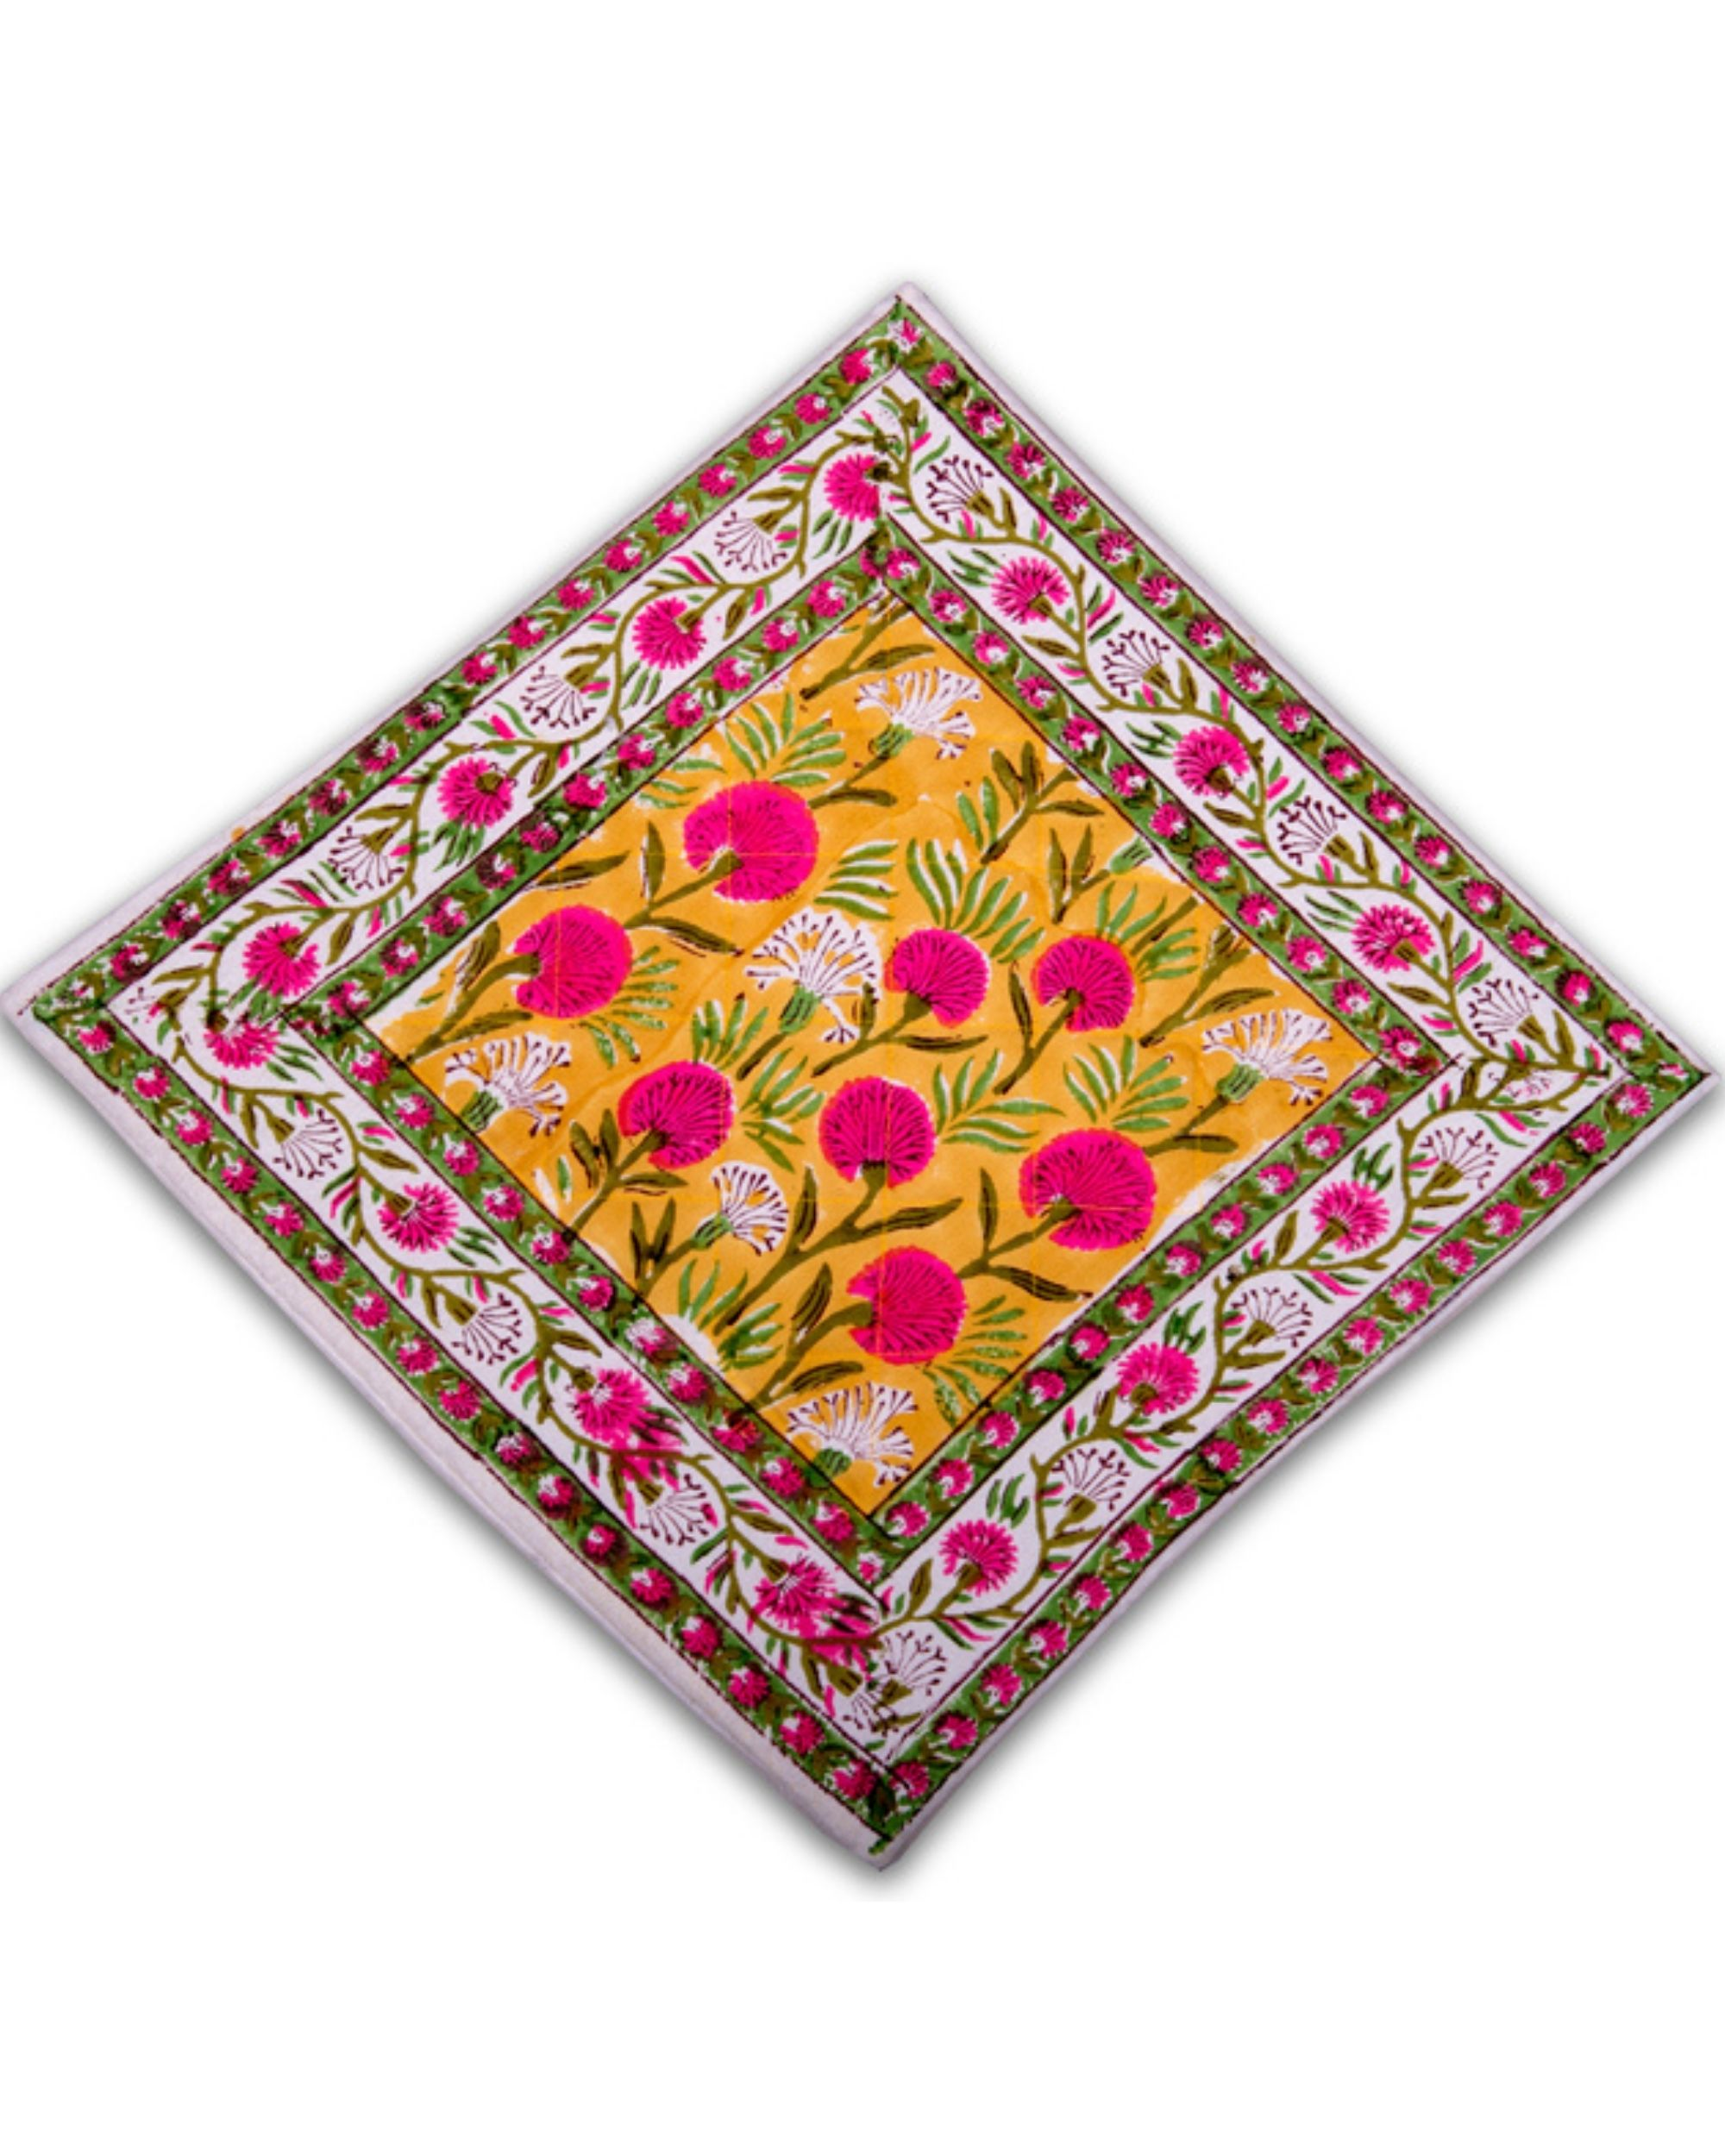 Yellow and pink floral printed quilted cushion covers - set of 5